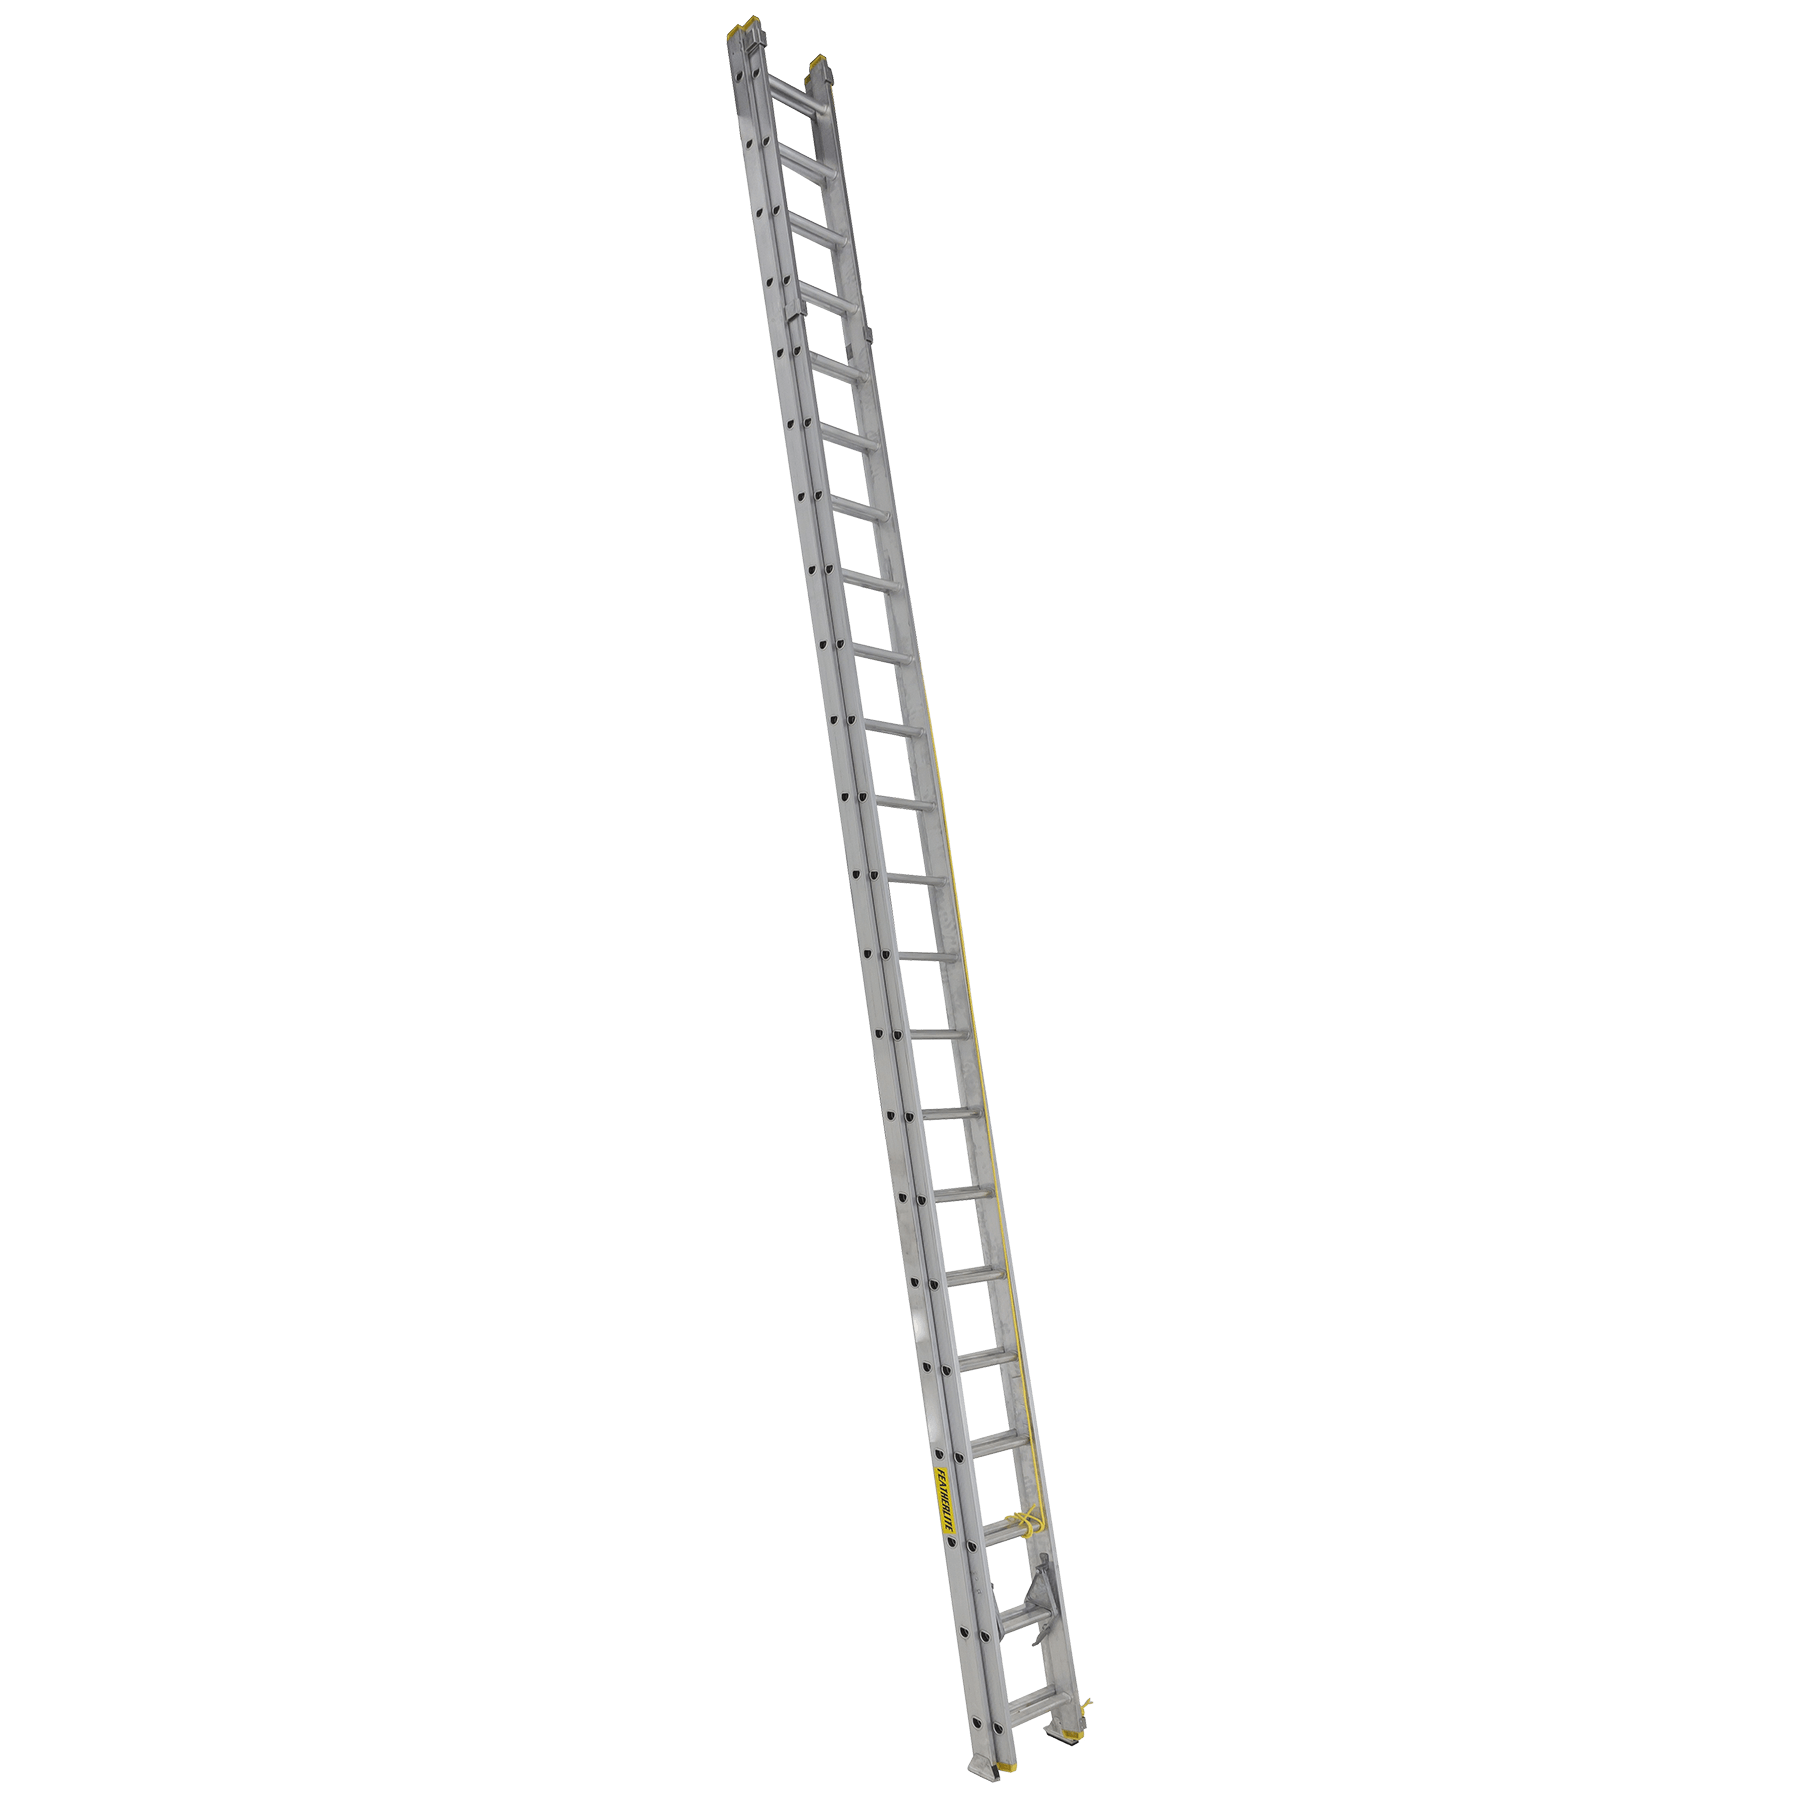 Aluminium ladder 11ft